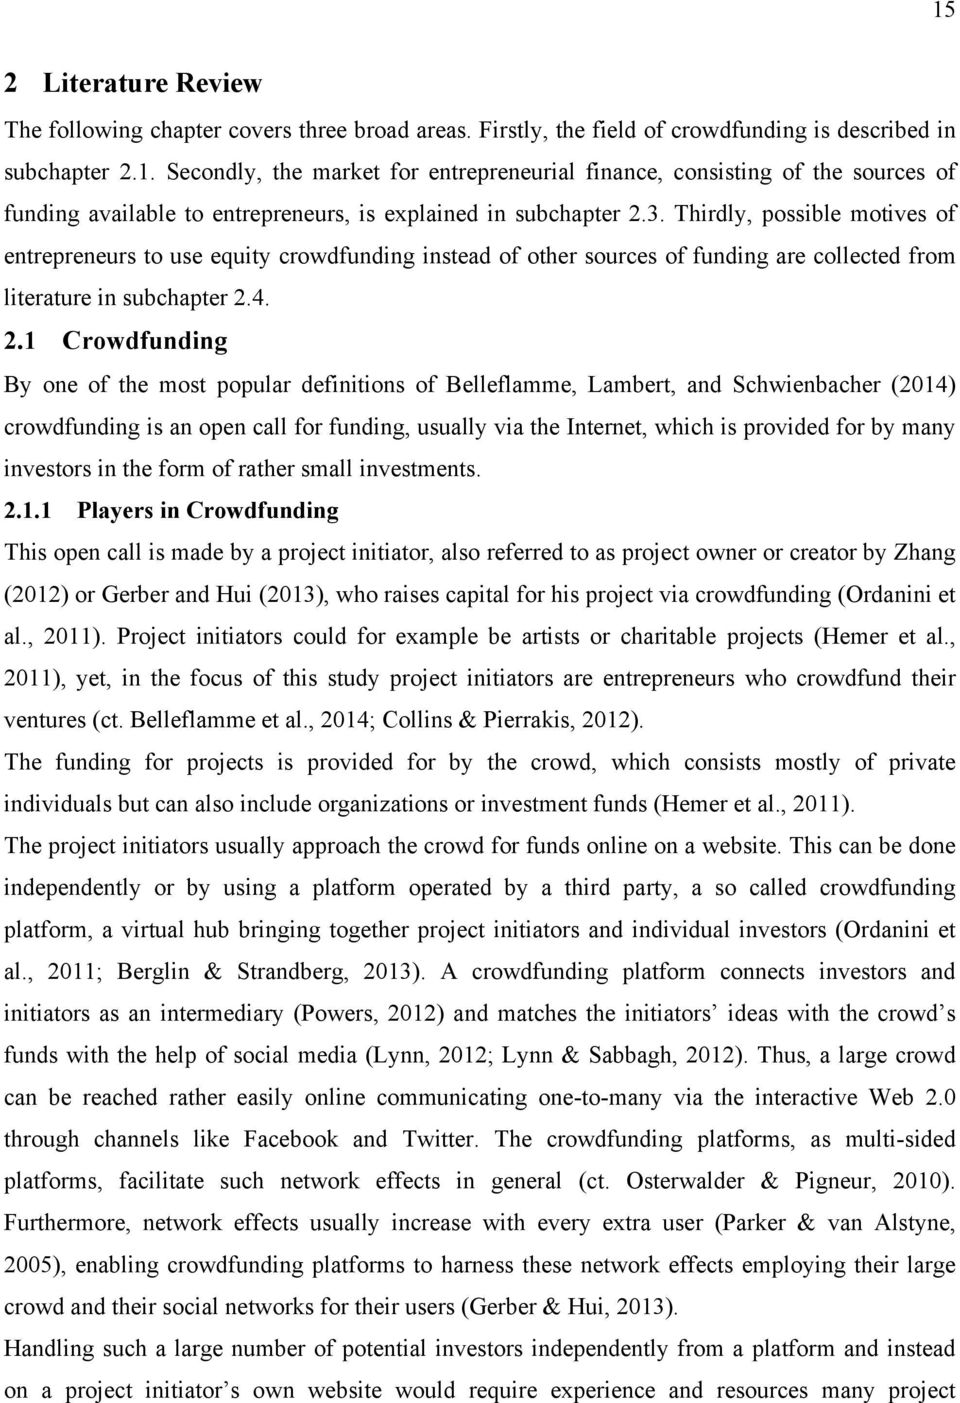 4. 2.1 Crowdfunding By one of the most popular definitions of Belleflamme, Lambert, and Schwienbacher (2014) crowdfunding is an open call for funding, usually via the Internet, which is provided for